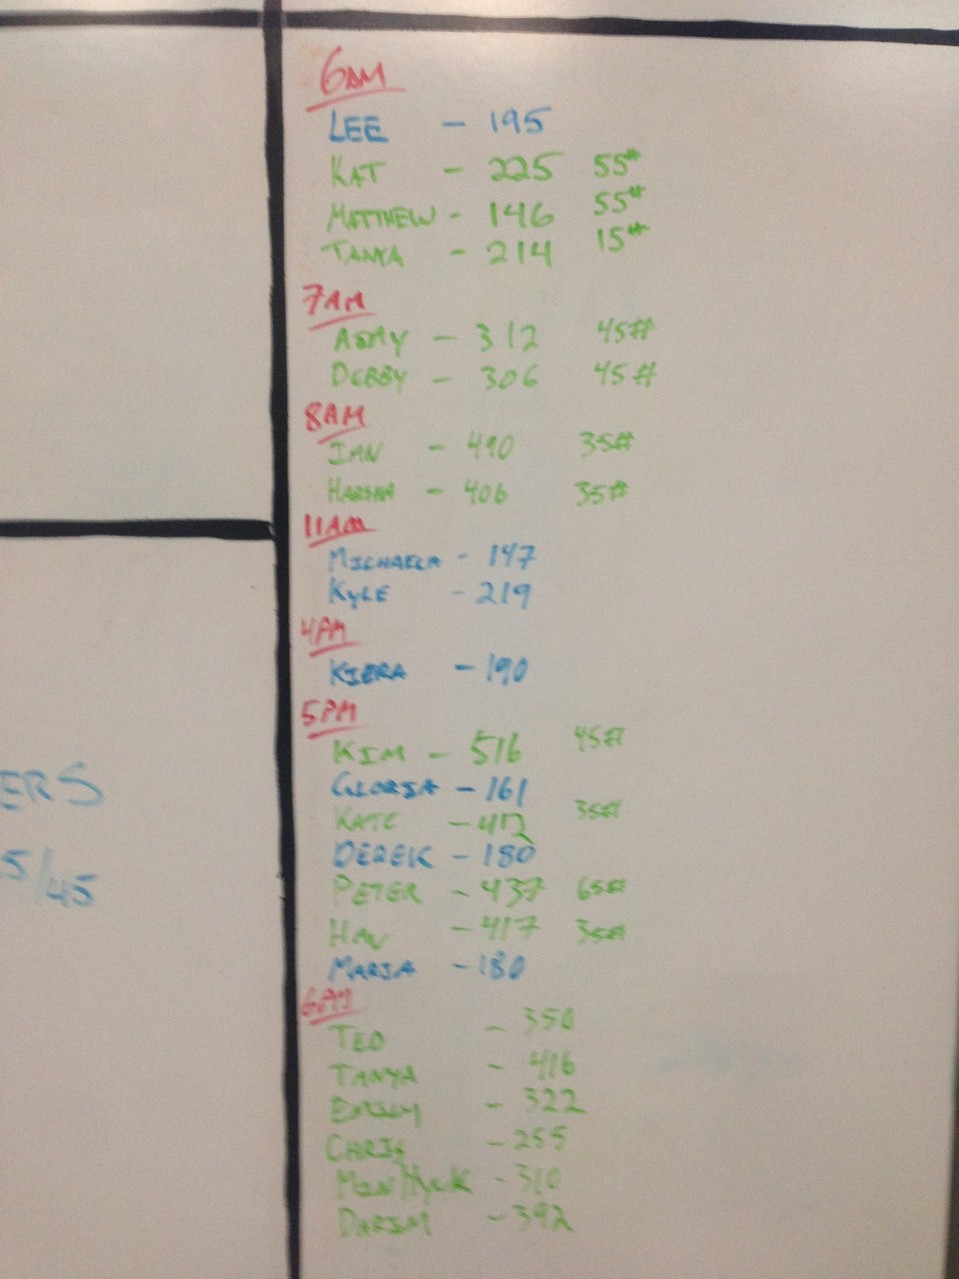 June 25 WOD Results